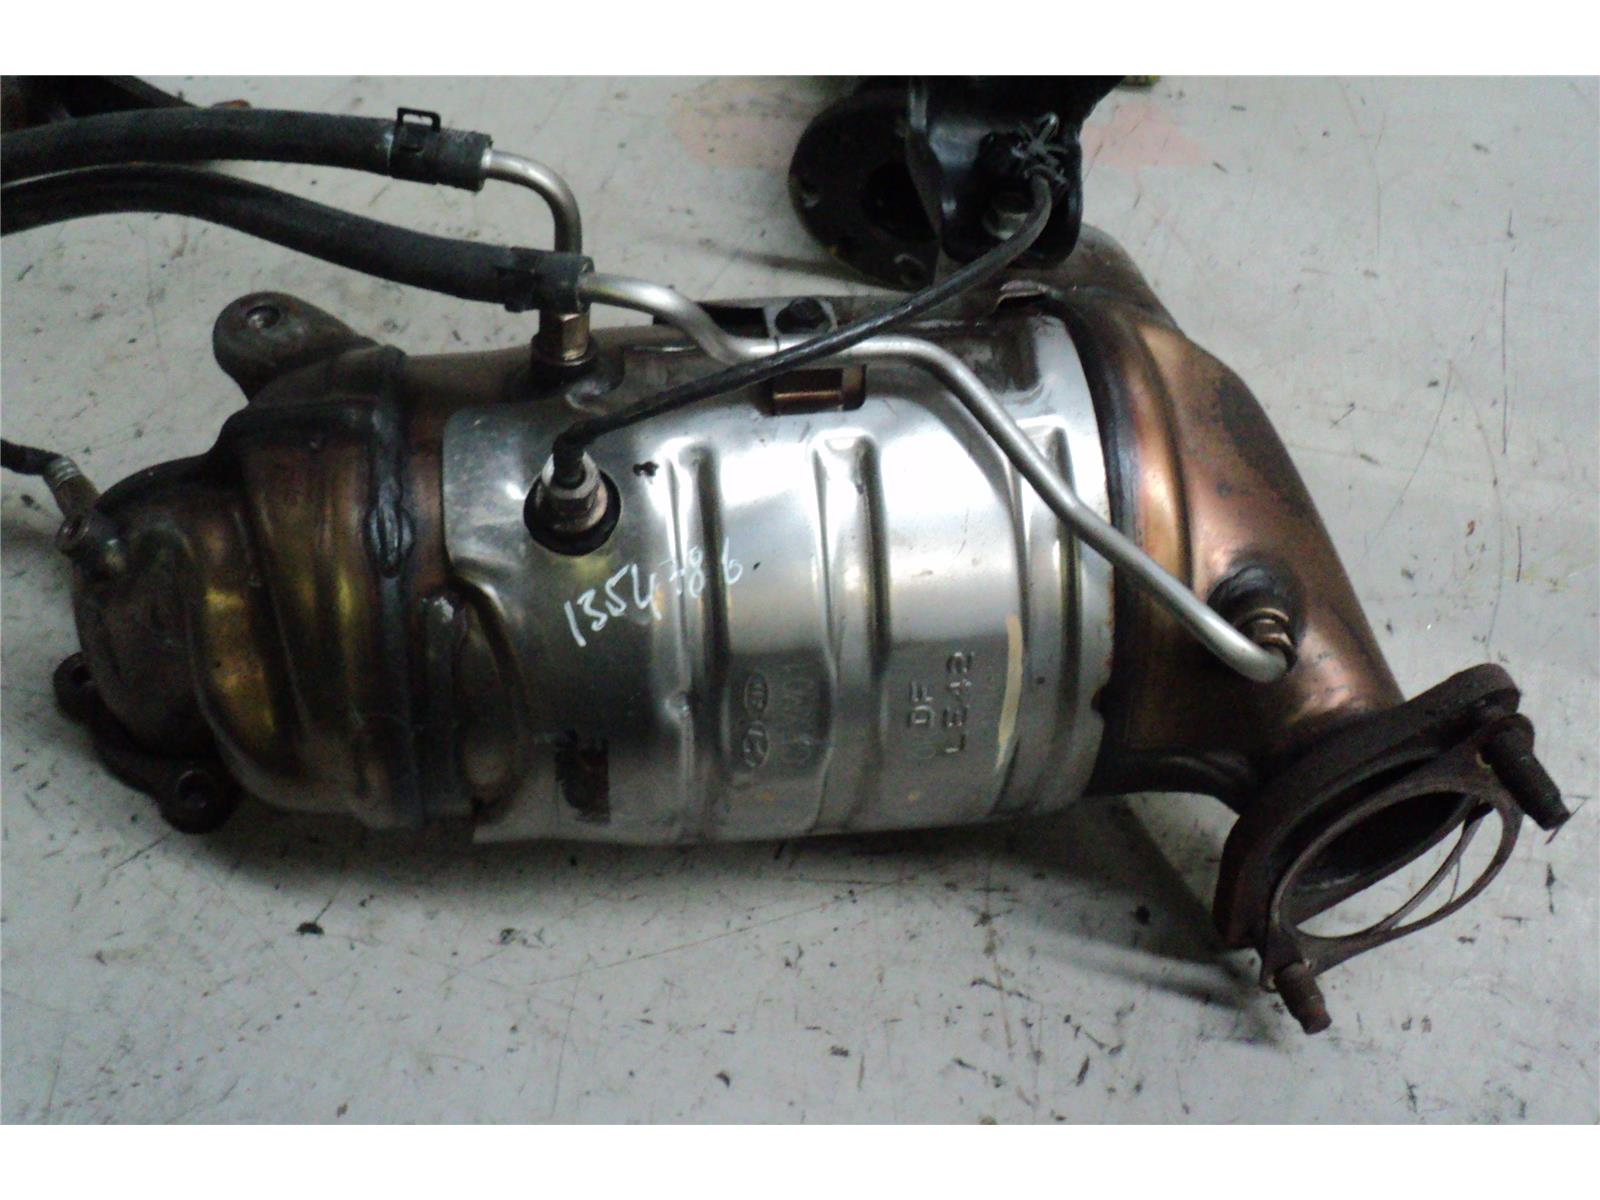 ... EXHAUST PARTICULATE FILTER 2006 To 2012 Hyundai Santa Fe 2.2 DFLE42 -  1131520 ...